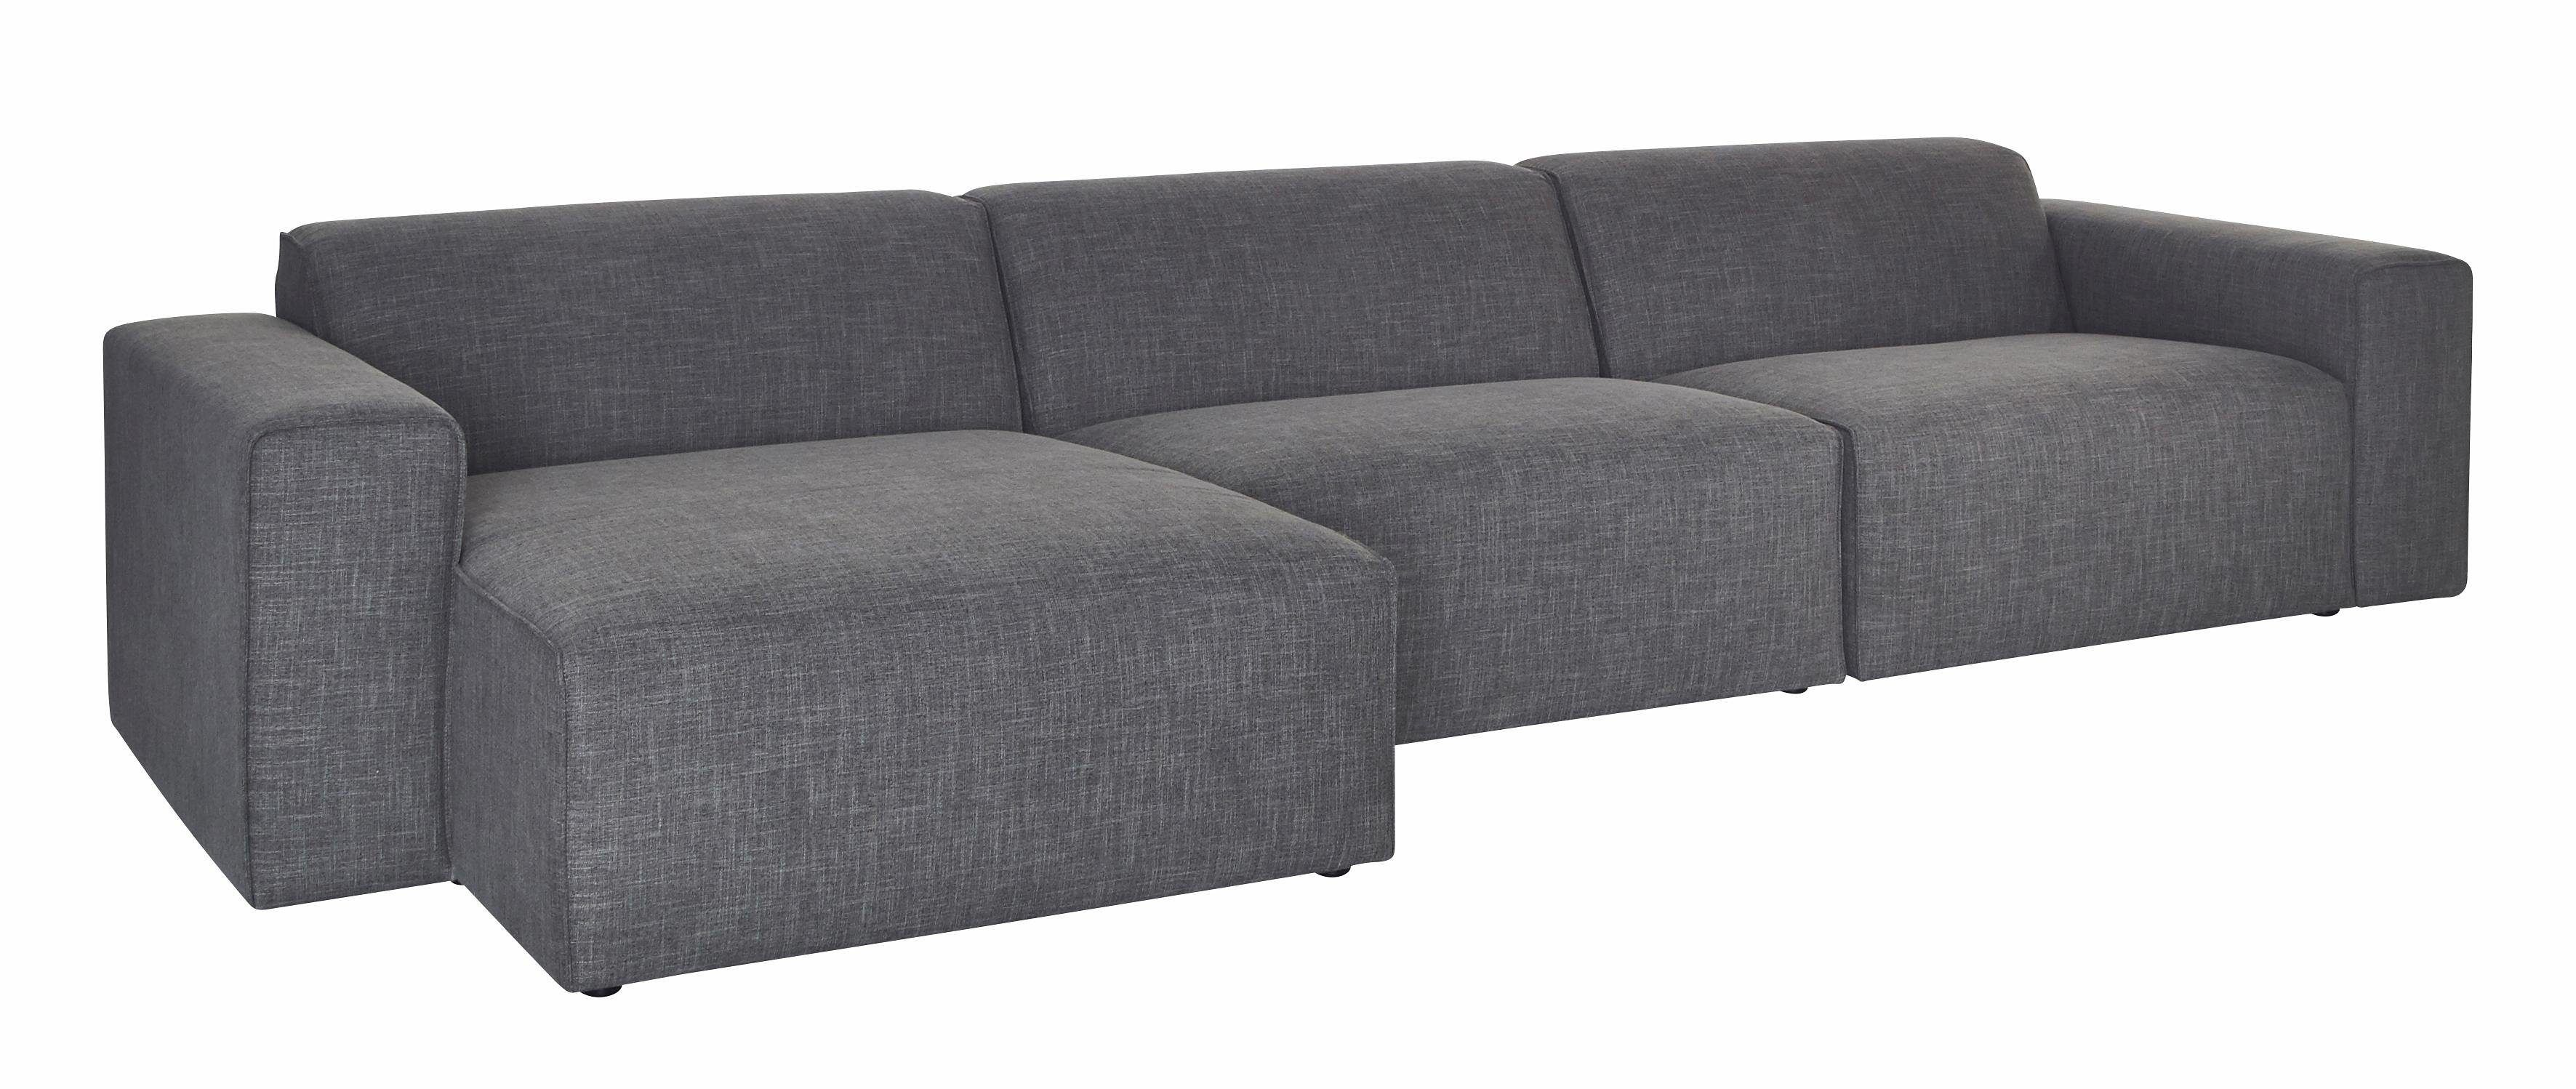 Utica Sleeper Sofa